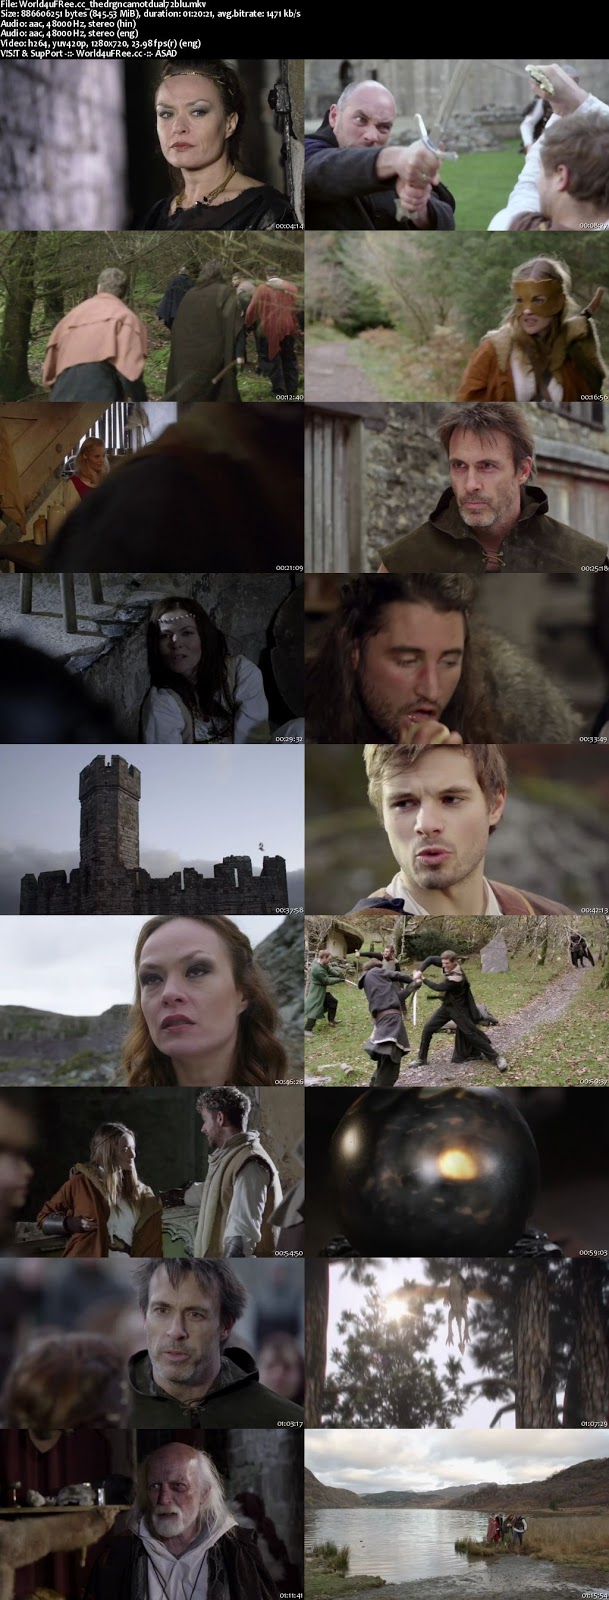 Dragons of Camelot BRRip 2014 Dual Audio 720p 800MB hollywood movie free download at world4ufree.cc